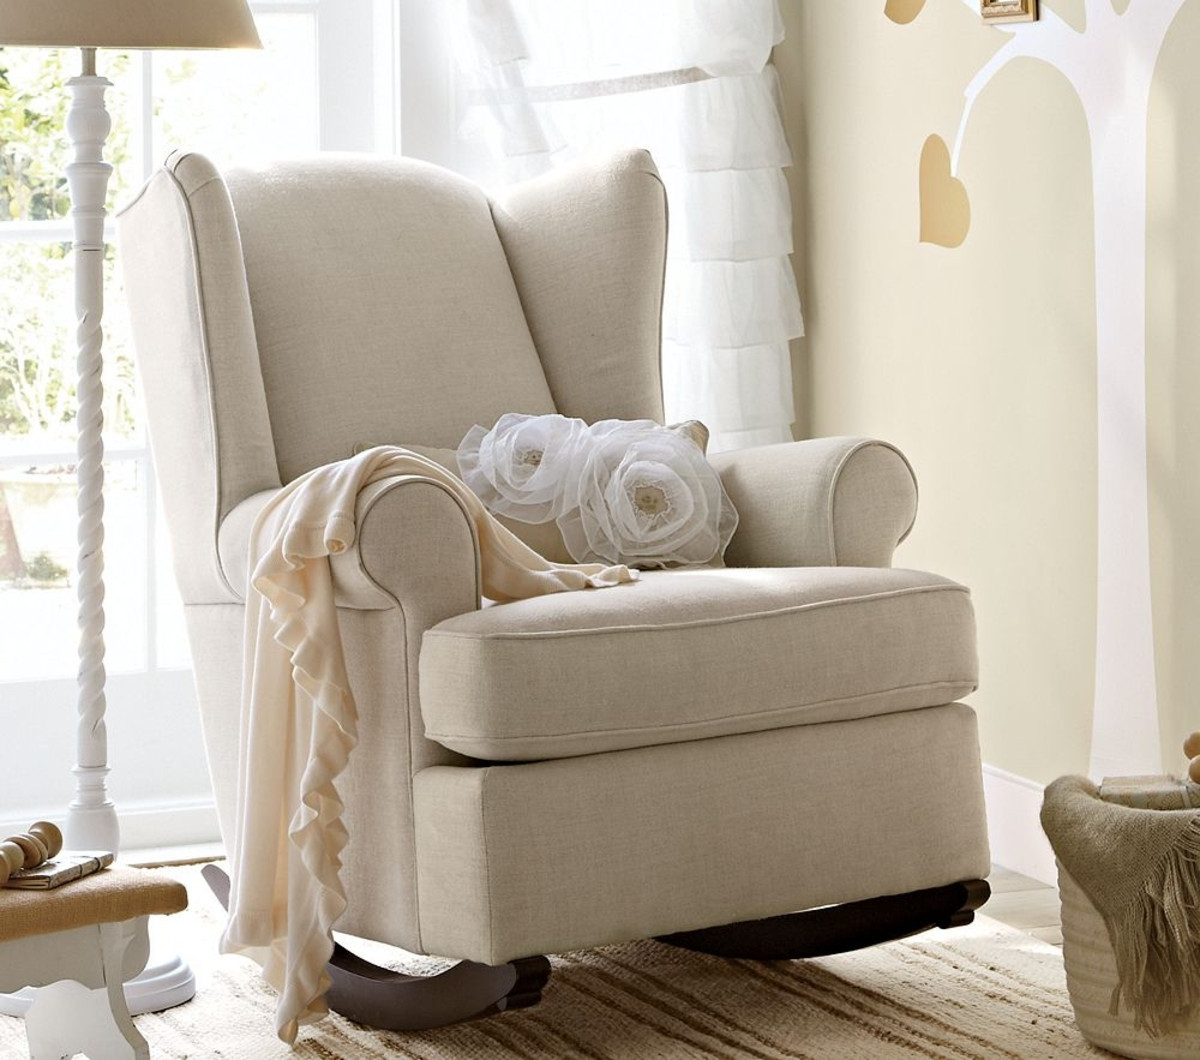 Rocking Chairs For Baby Room With Favorite Furniture Nursery Rocking Chair With Ottoman Chairs For Baby Room (View 17 of 20)